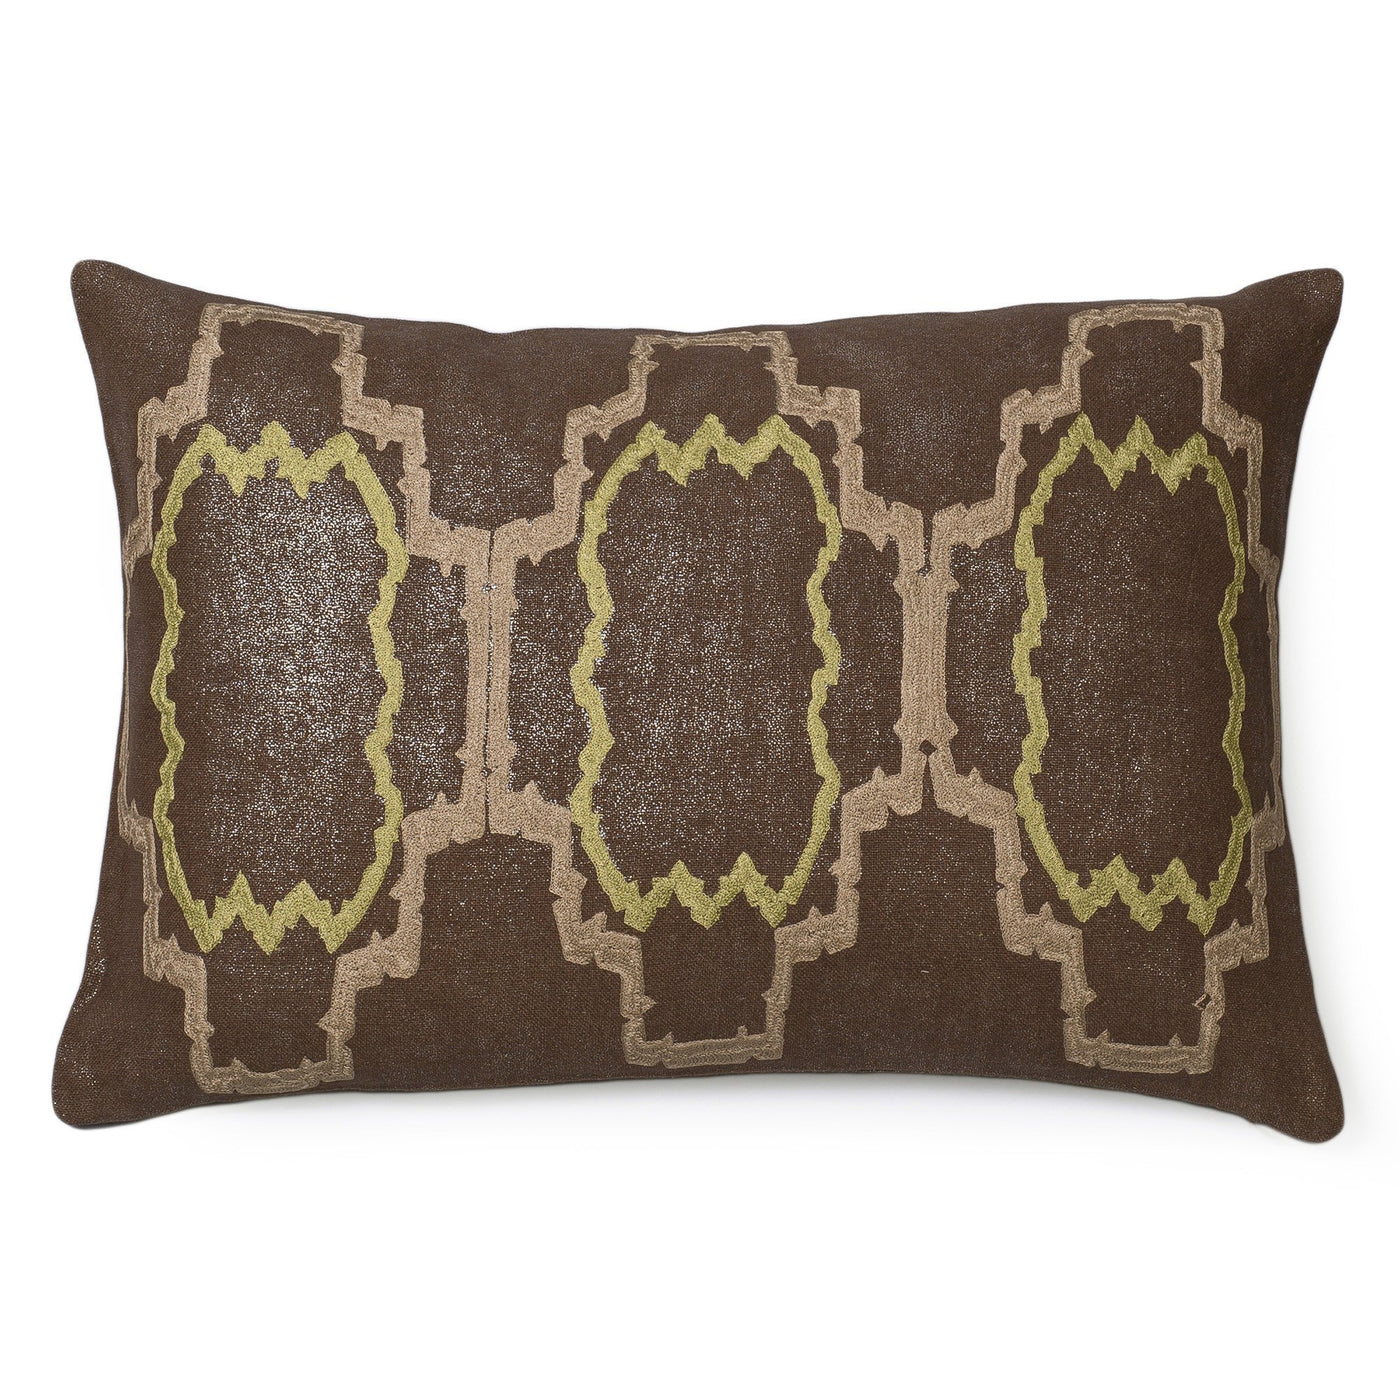 Lilly Pillow - Fudge